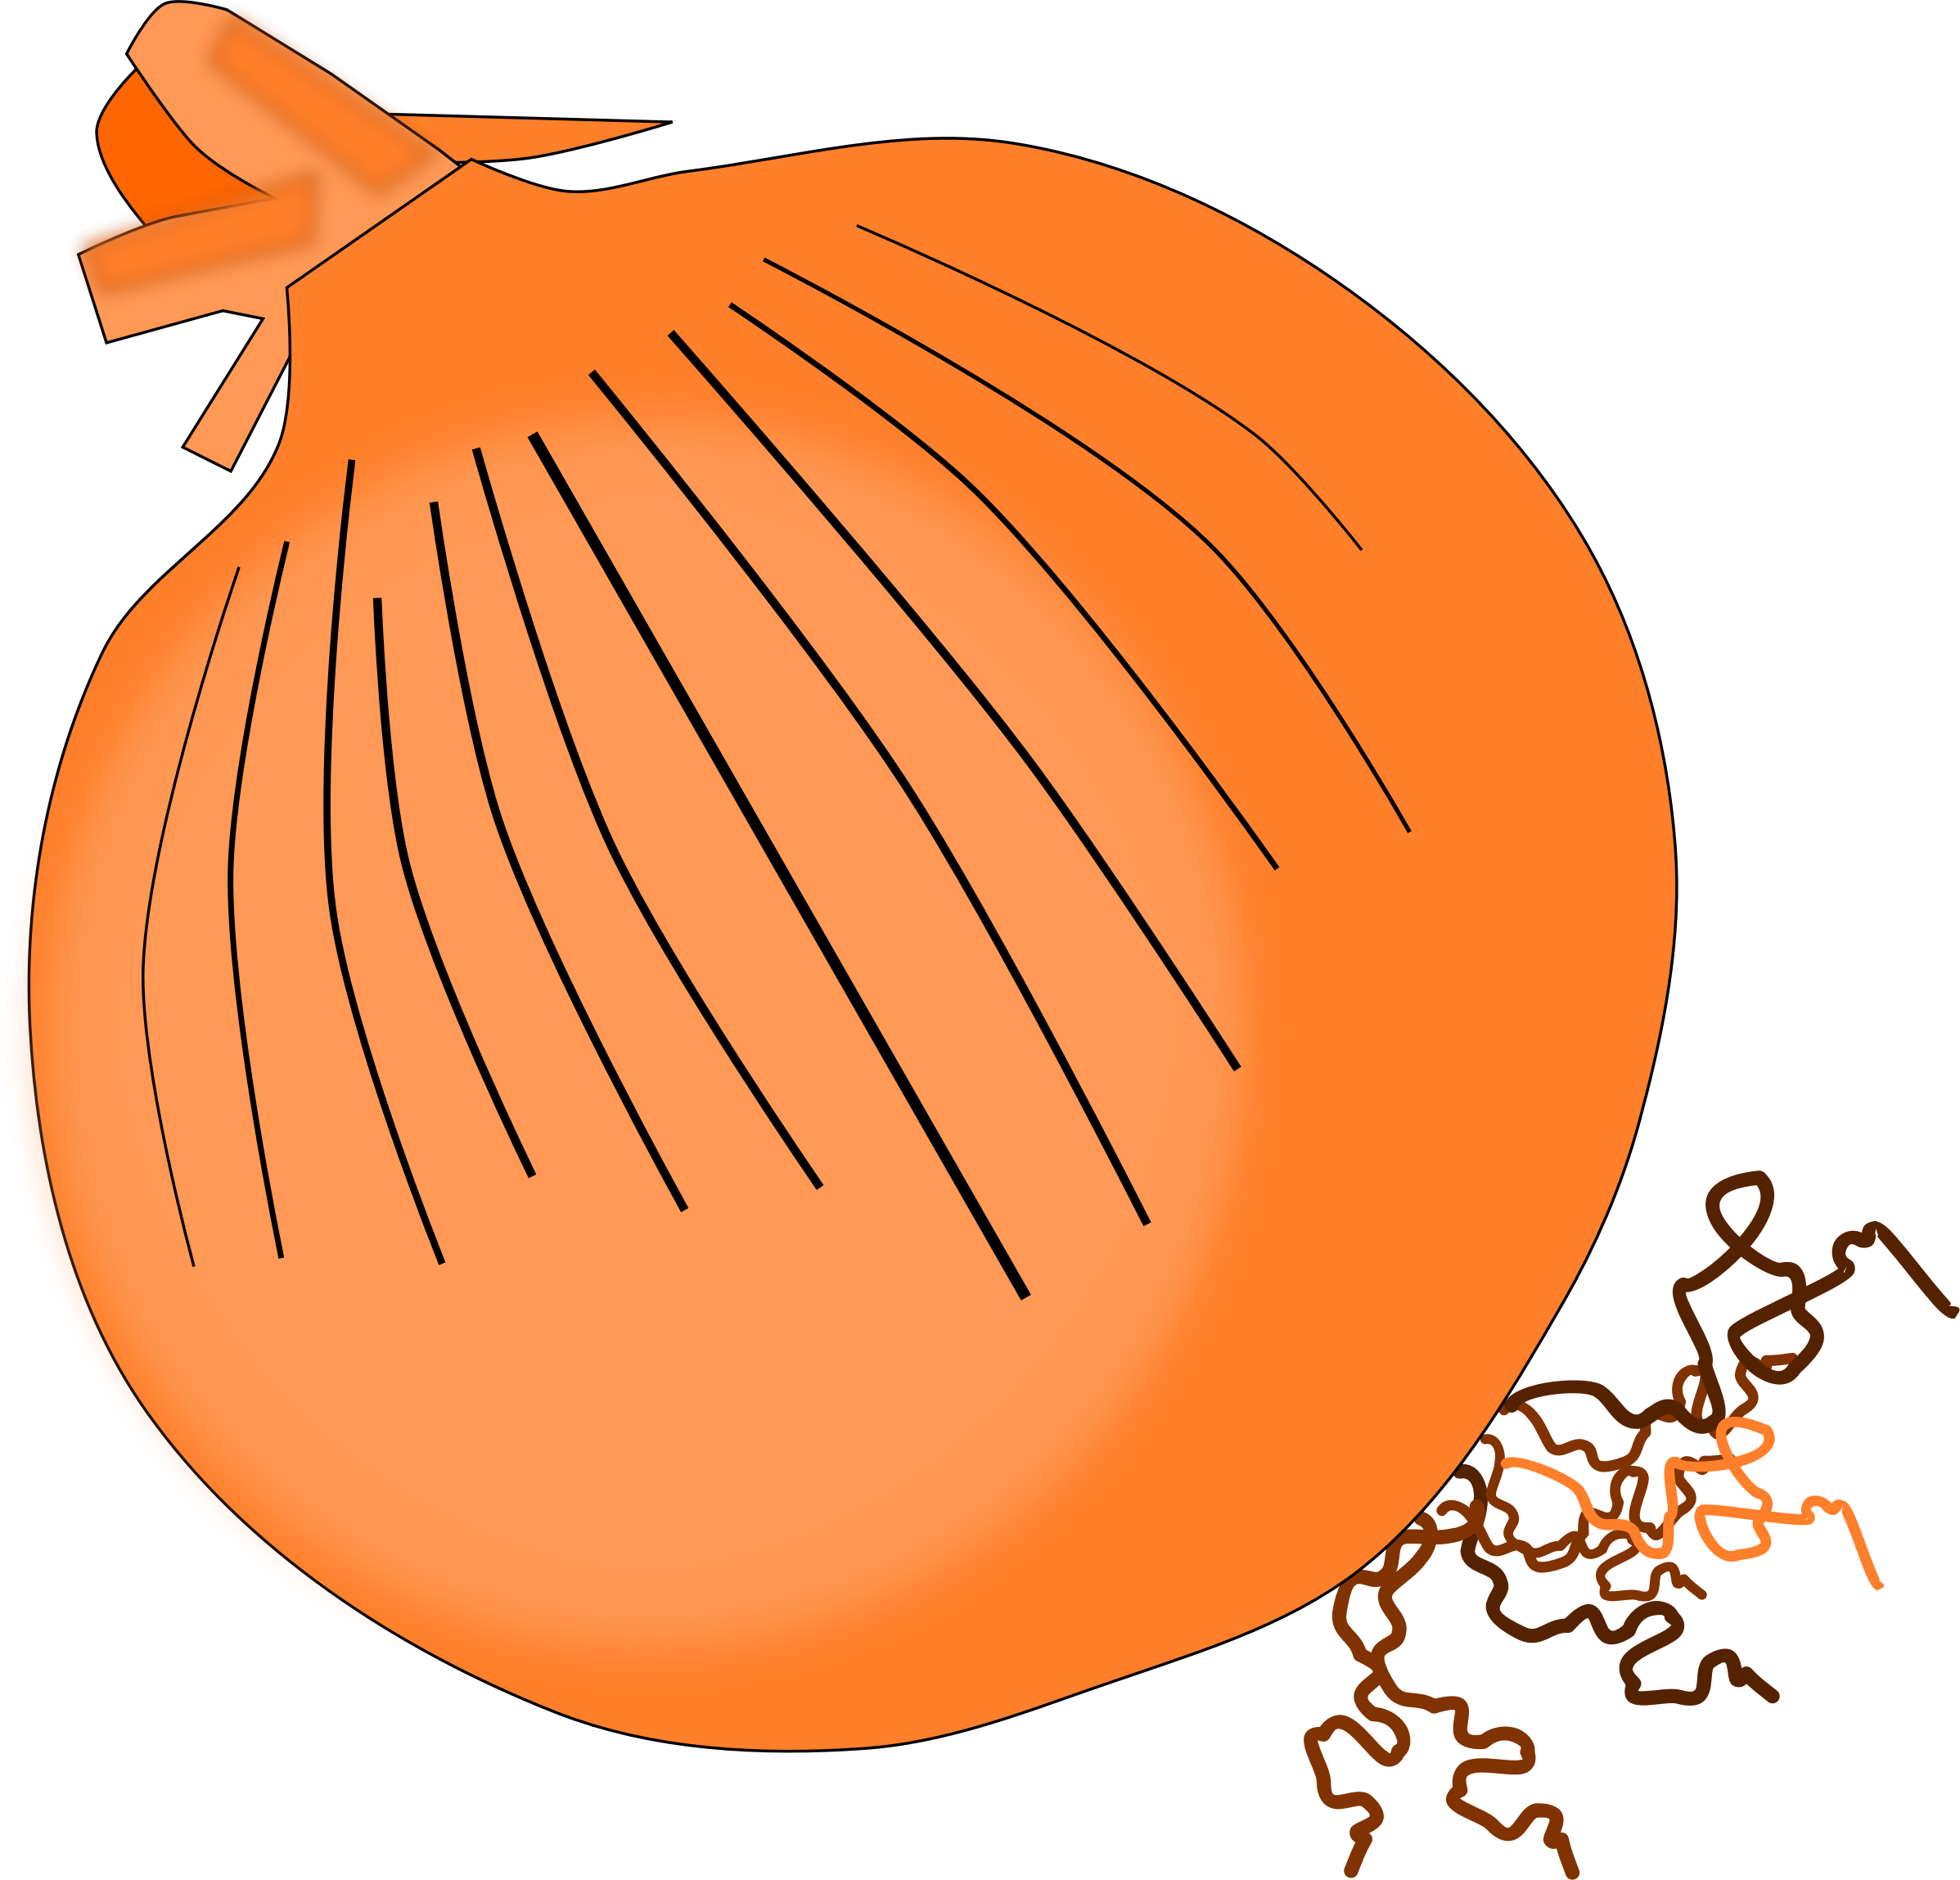 Veggies clipart onion vegetable. Big image png